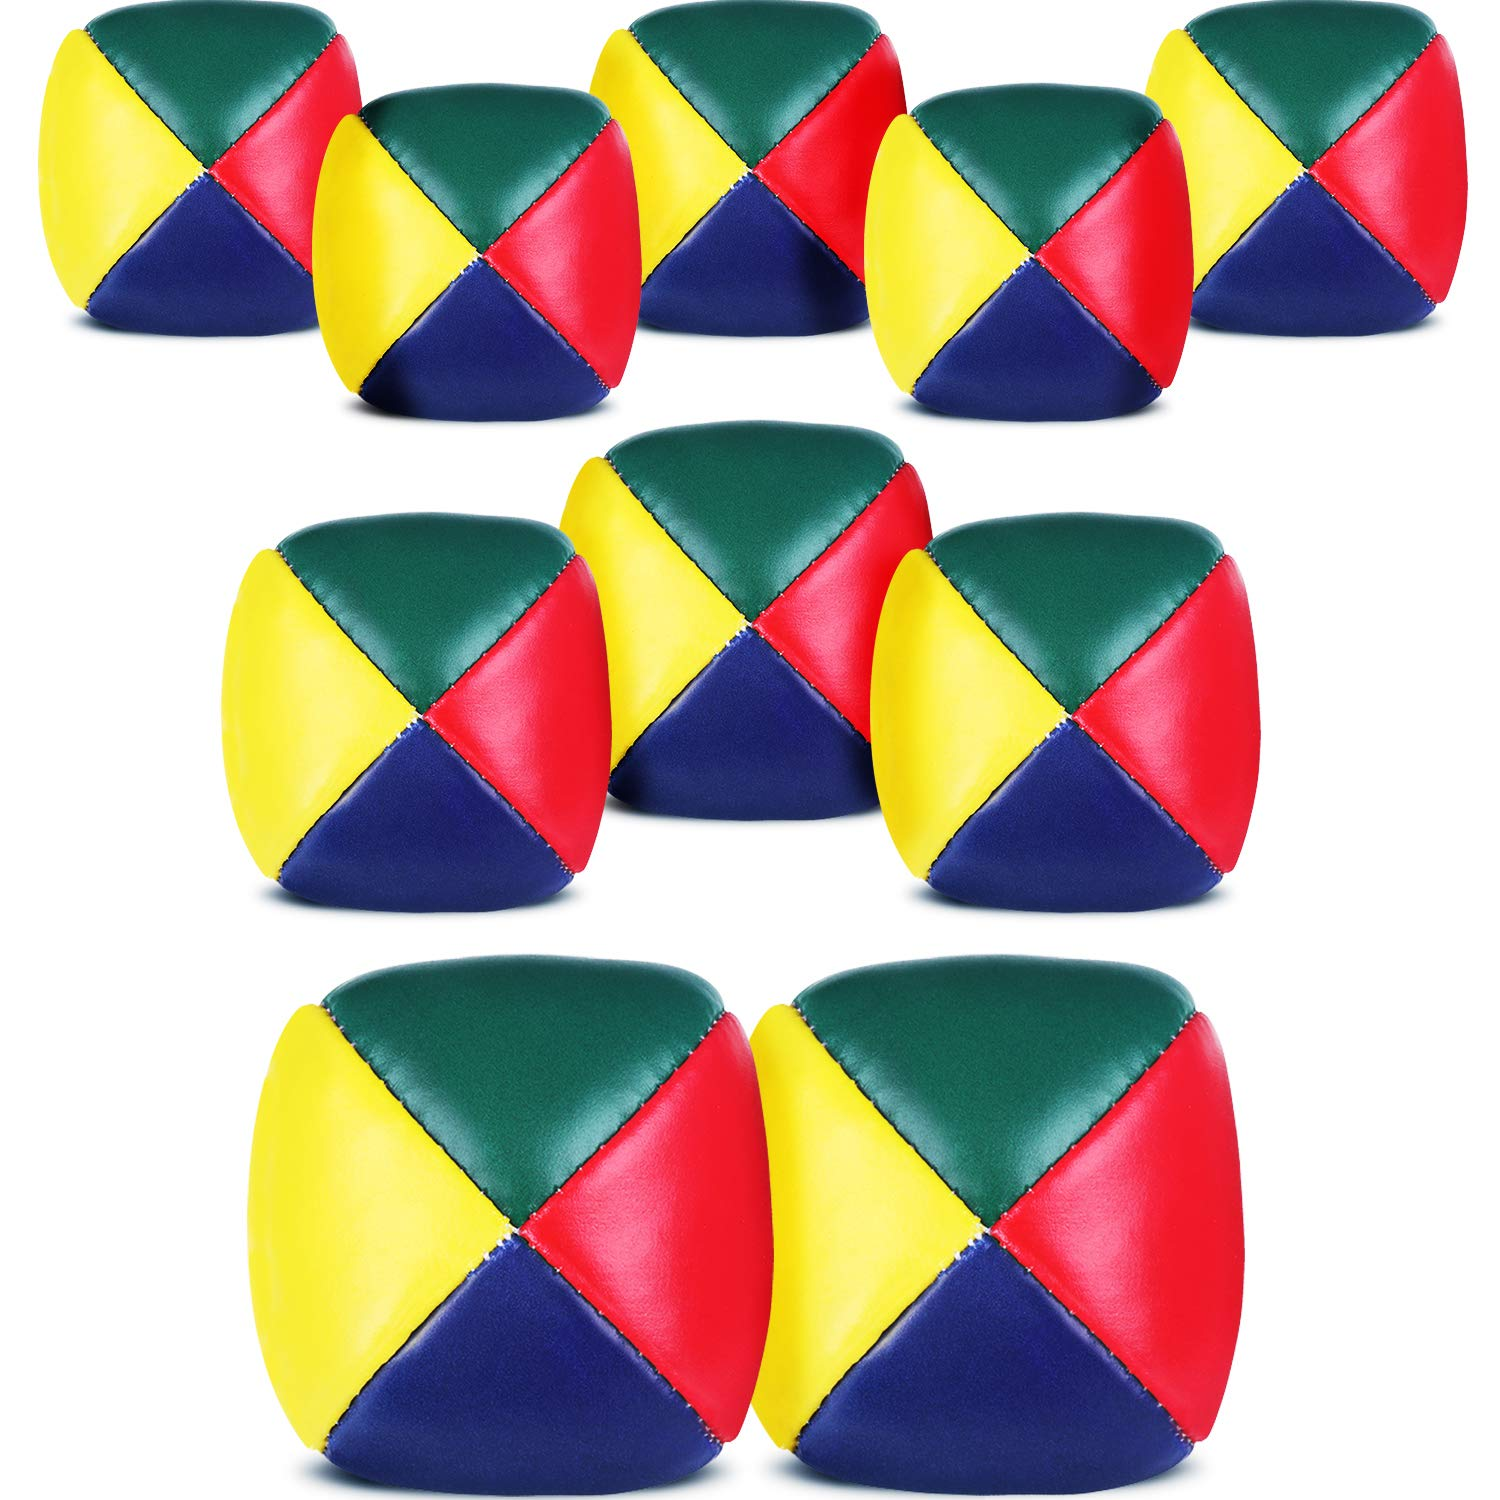 Patelai Juggling Balls Set for Beginners, Quality Mini Juggling Balls, Durable Juggle Ball Kit, Soft Easy Juggle Balls for Boys Girls and Adults, Multicolored (10 Packs) by Patelai (Image #7)